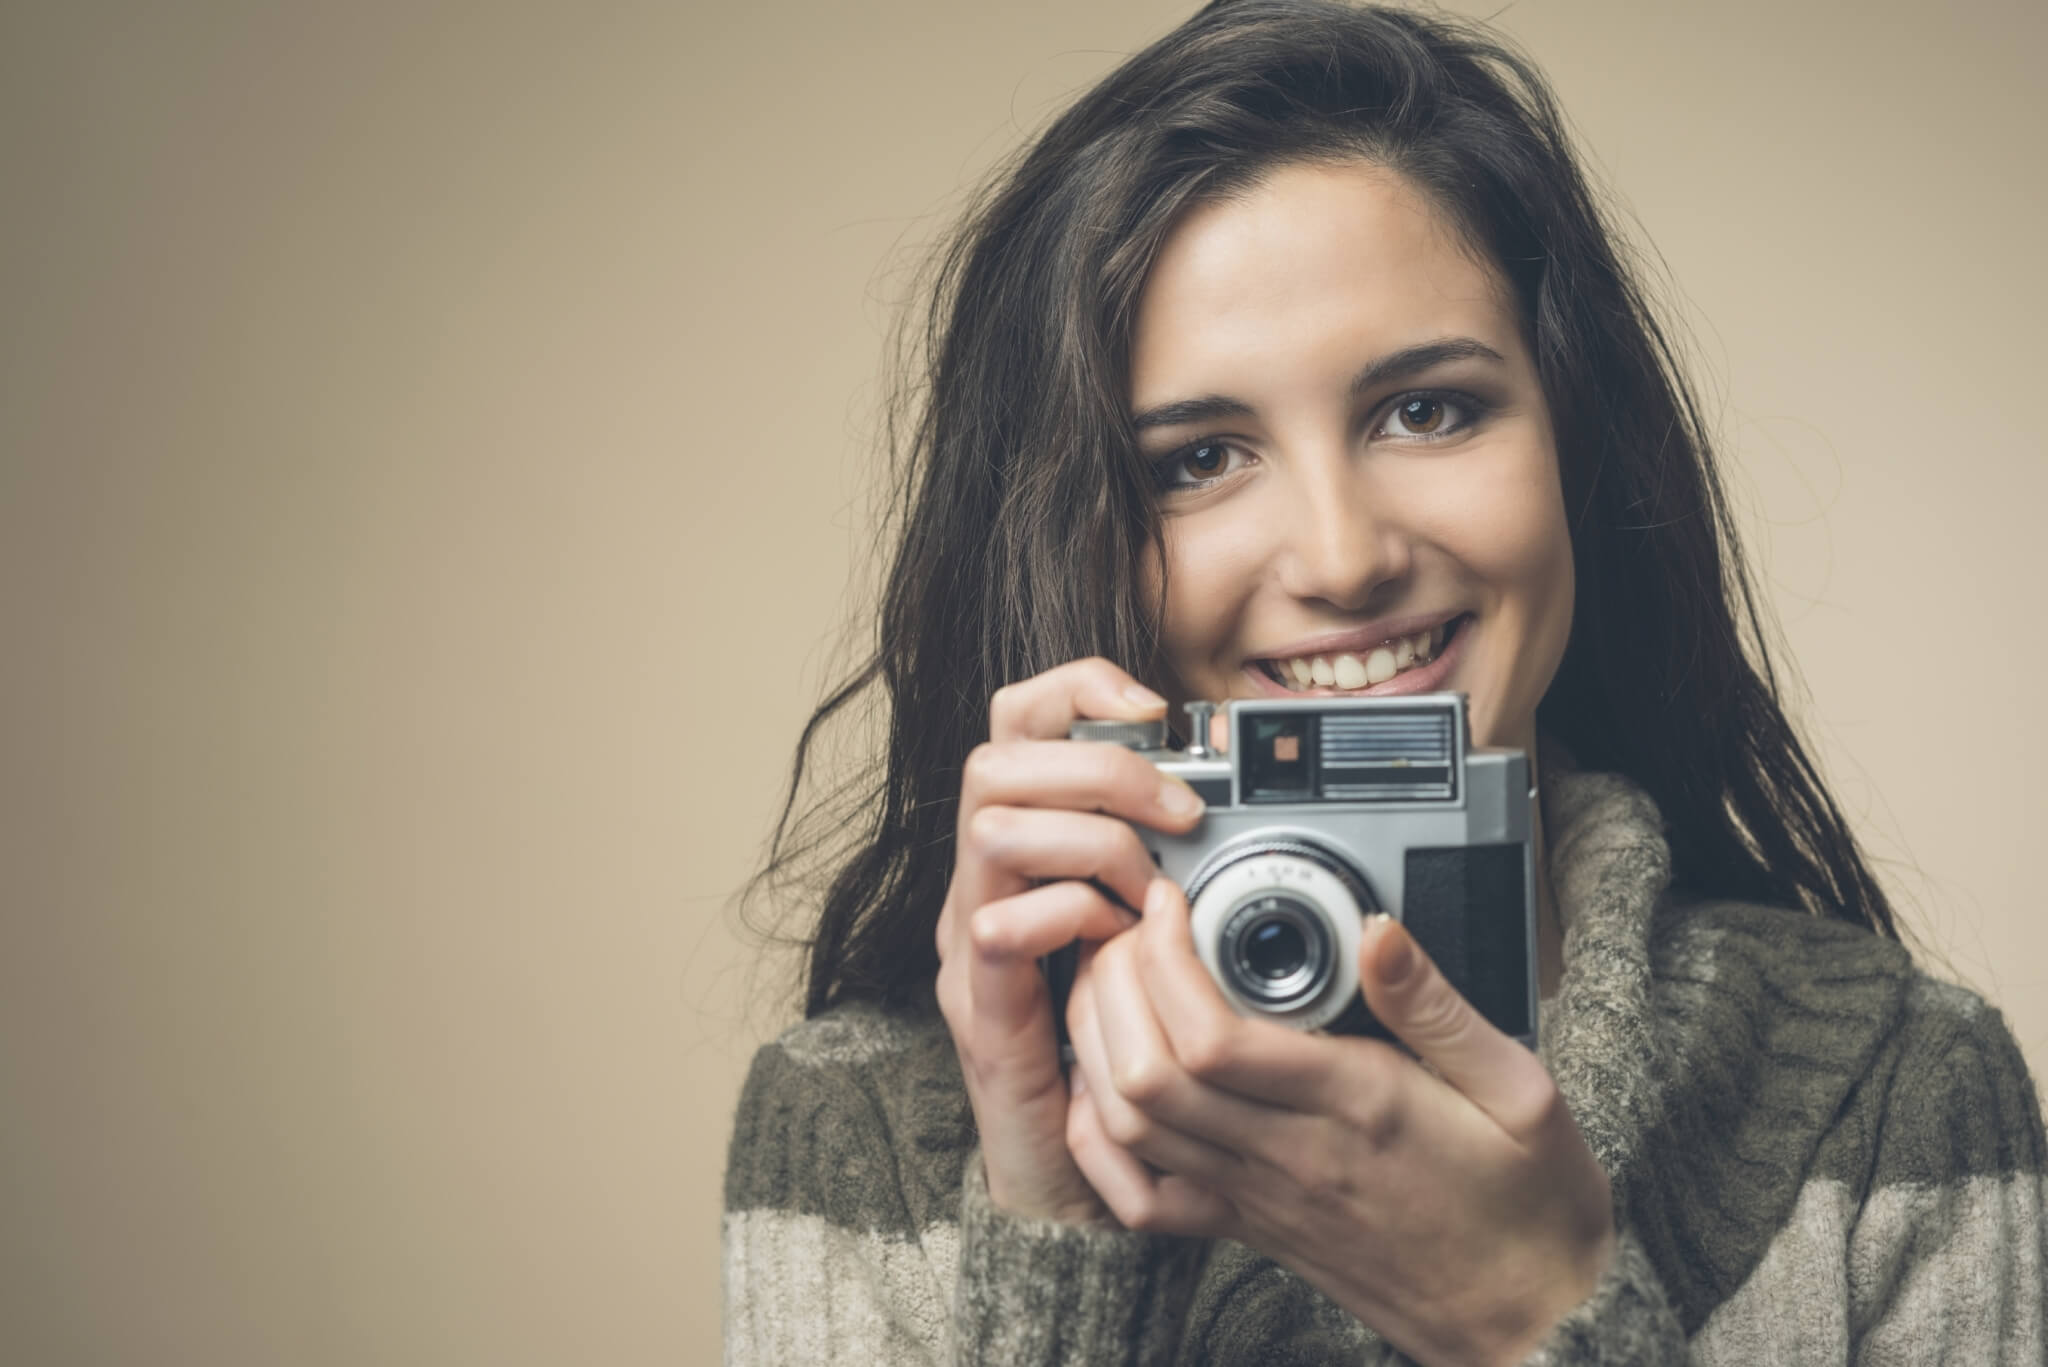 Young-woman-with-vintage-camera-000072402461_Large-1.jpg.jpeg